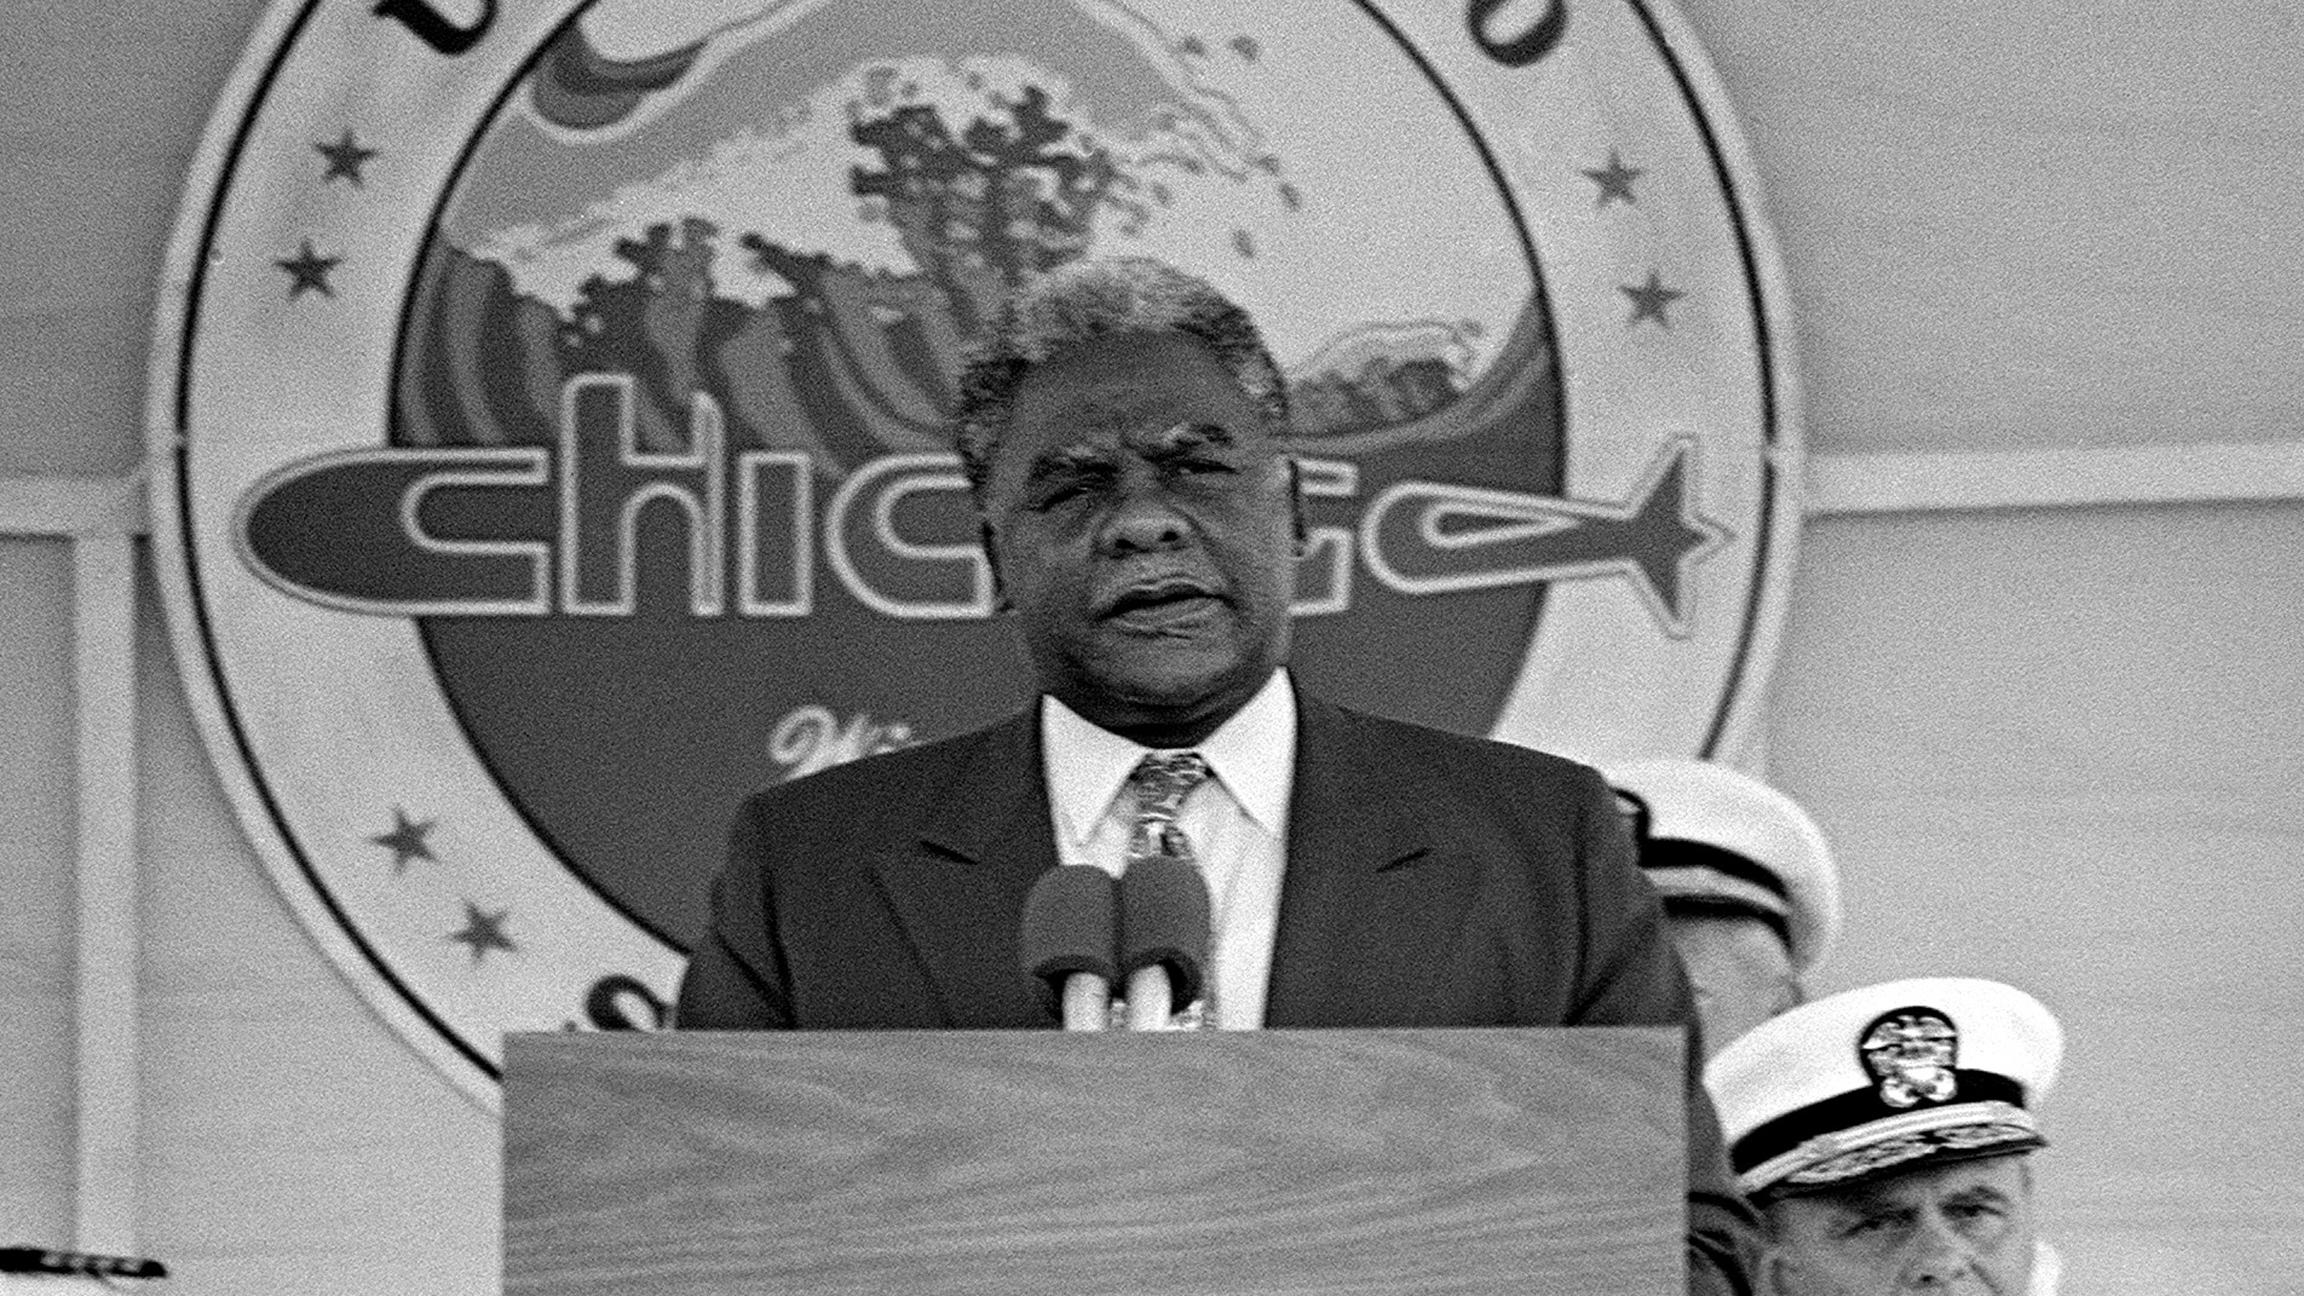 Chicago Mayor Harold Washington speaks during the commissioning of the nuclear-powered attack submarine USS Chicago in September 1986 in Norfolk, Virginia.